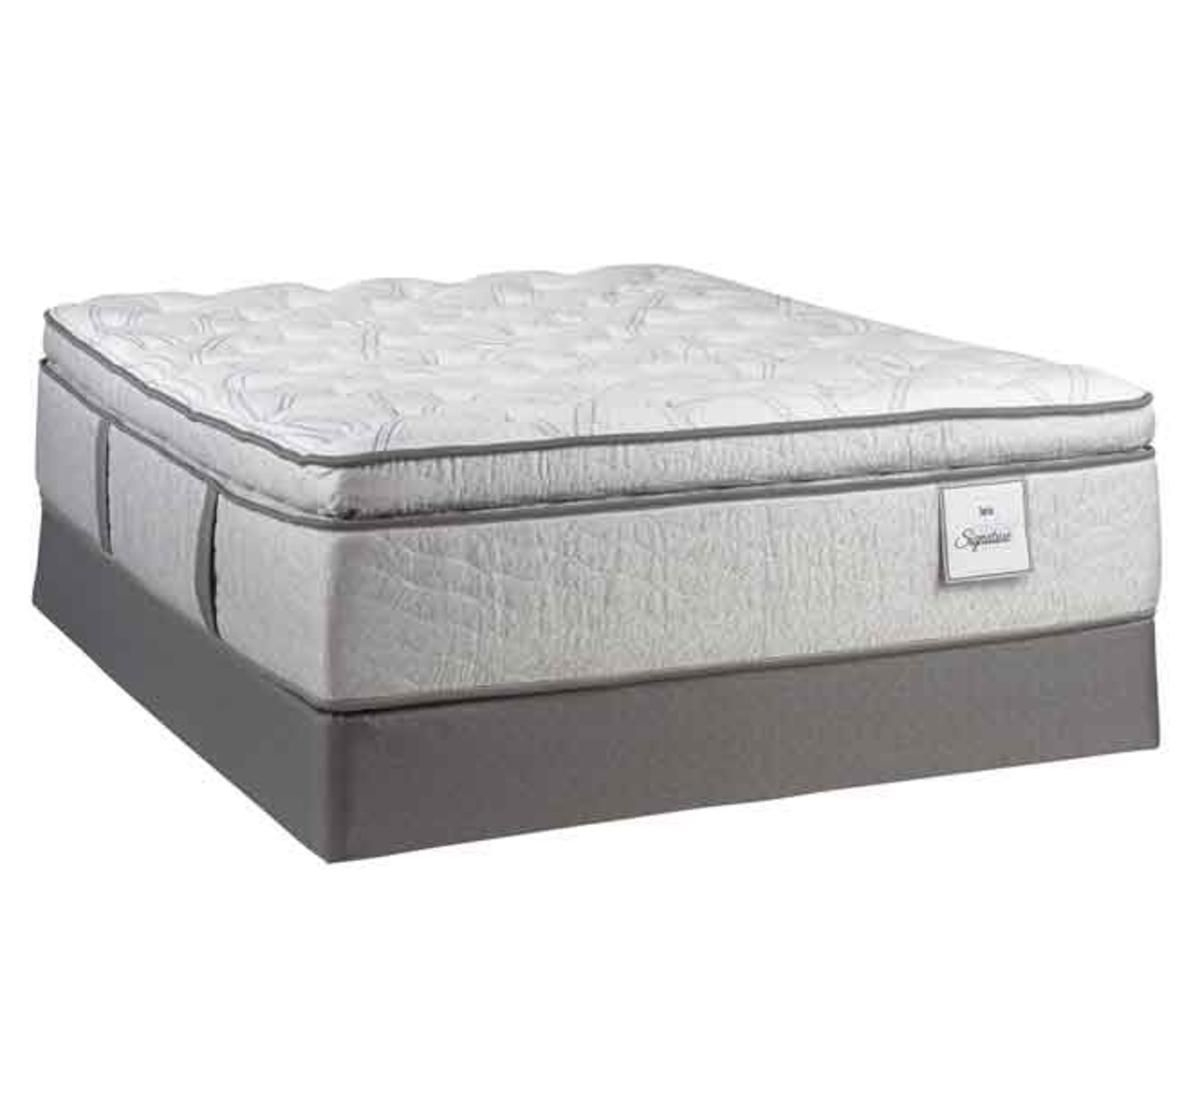 serta century signature imperial paradise twin xl mattress set badcock more. Black Bedroom Furniture Sets. Home Design Ideas